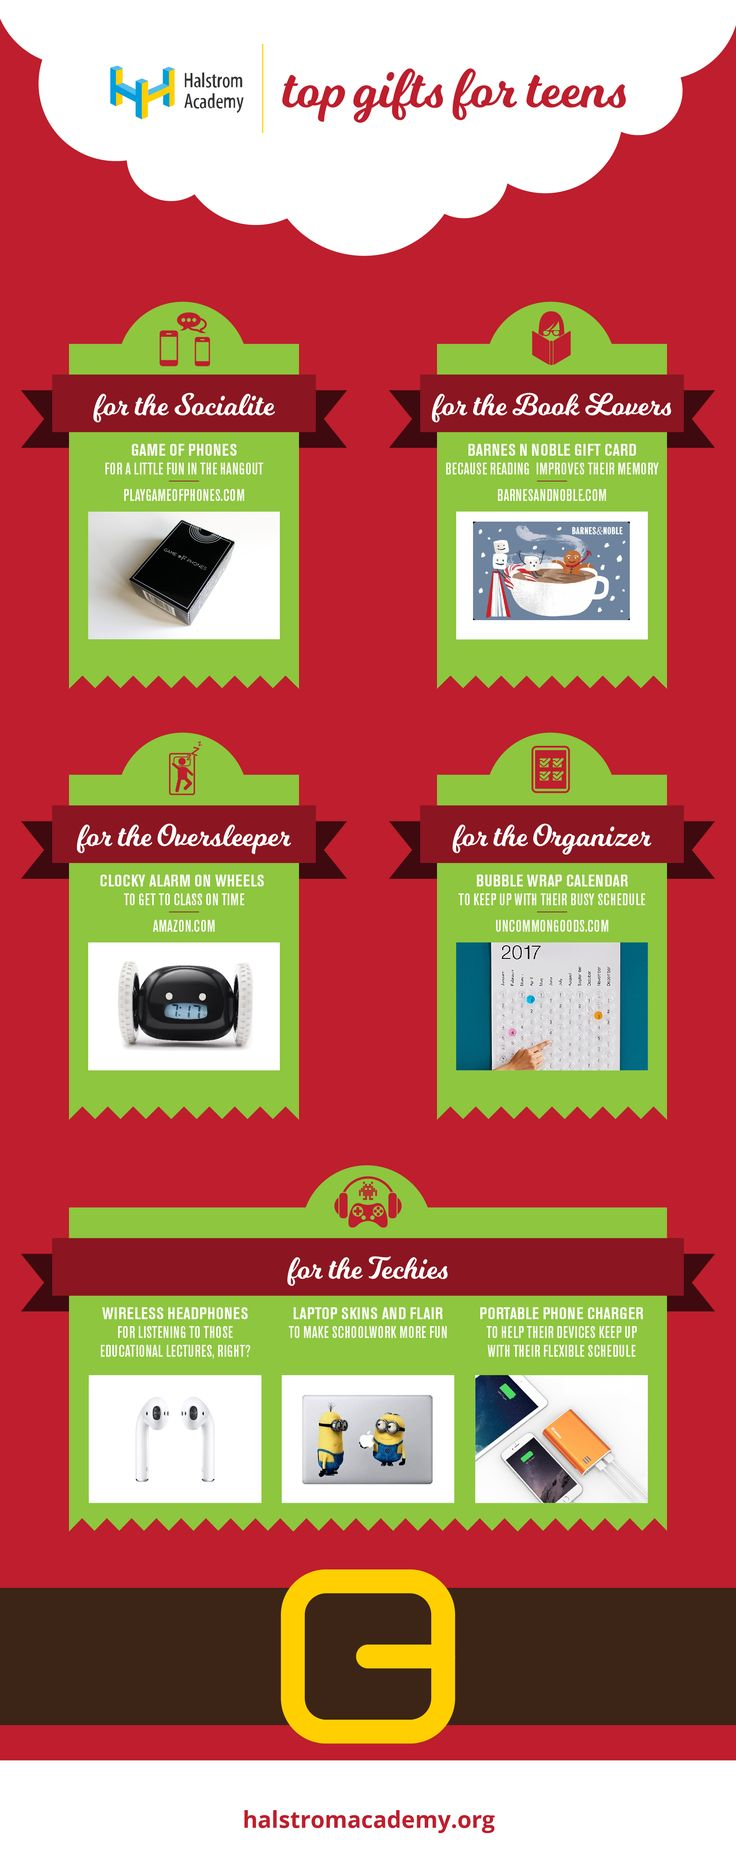 TOP HOLIDAY GIFTS FOR TEENS | LAST MINUTE GIFT IDEAS | BEST CHRISTMAS PRESENTS FOR TEENS | HALSTROM ACADEMY | Christmas and holiday gift ideas for your teen. Our 2016/2017 holiday gift list will help you find the  best gift for your teen. Holiday gifts for the socialites, the perfect gift for book lovers, the best Christmas presents for techies, organizers, and even the over-sleepers.